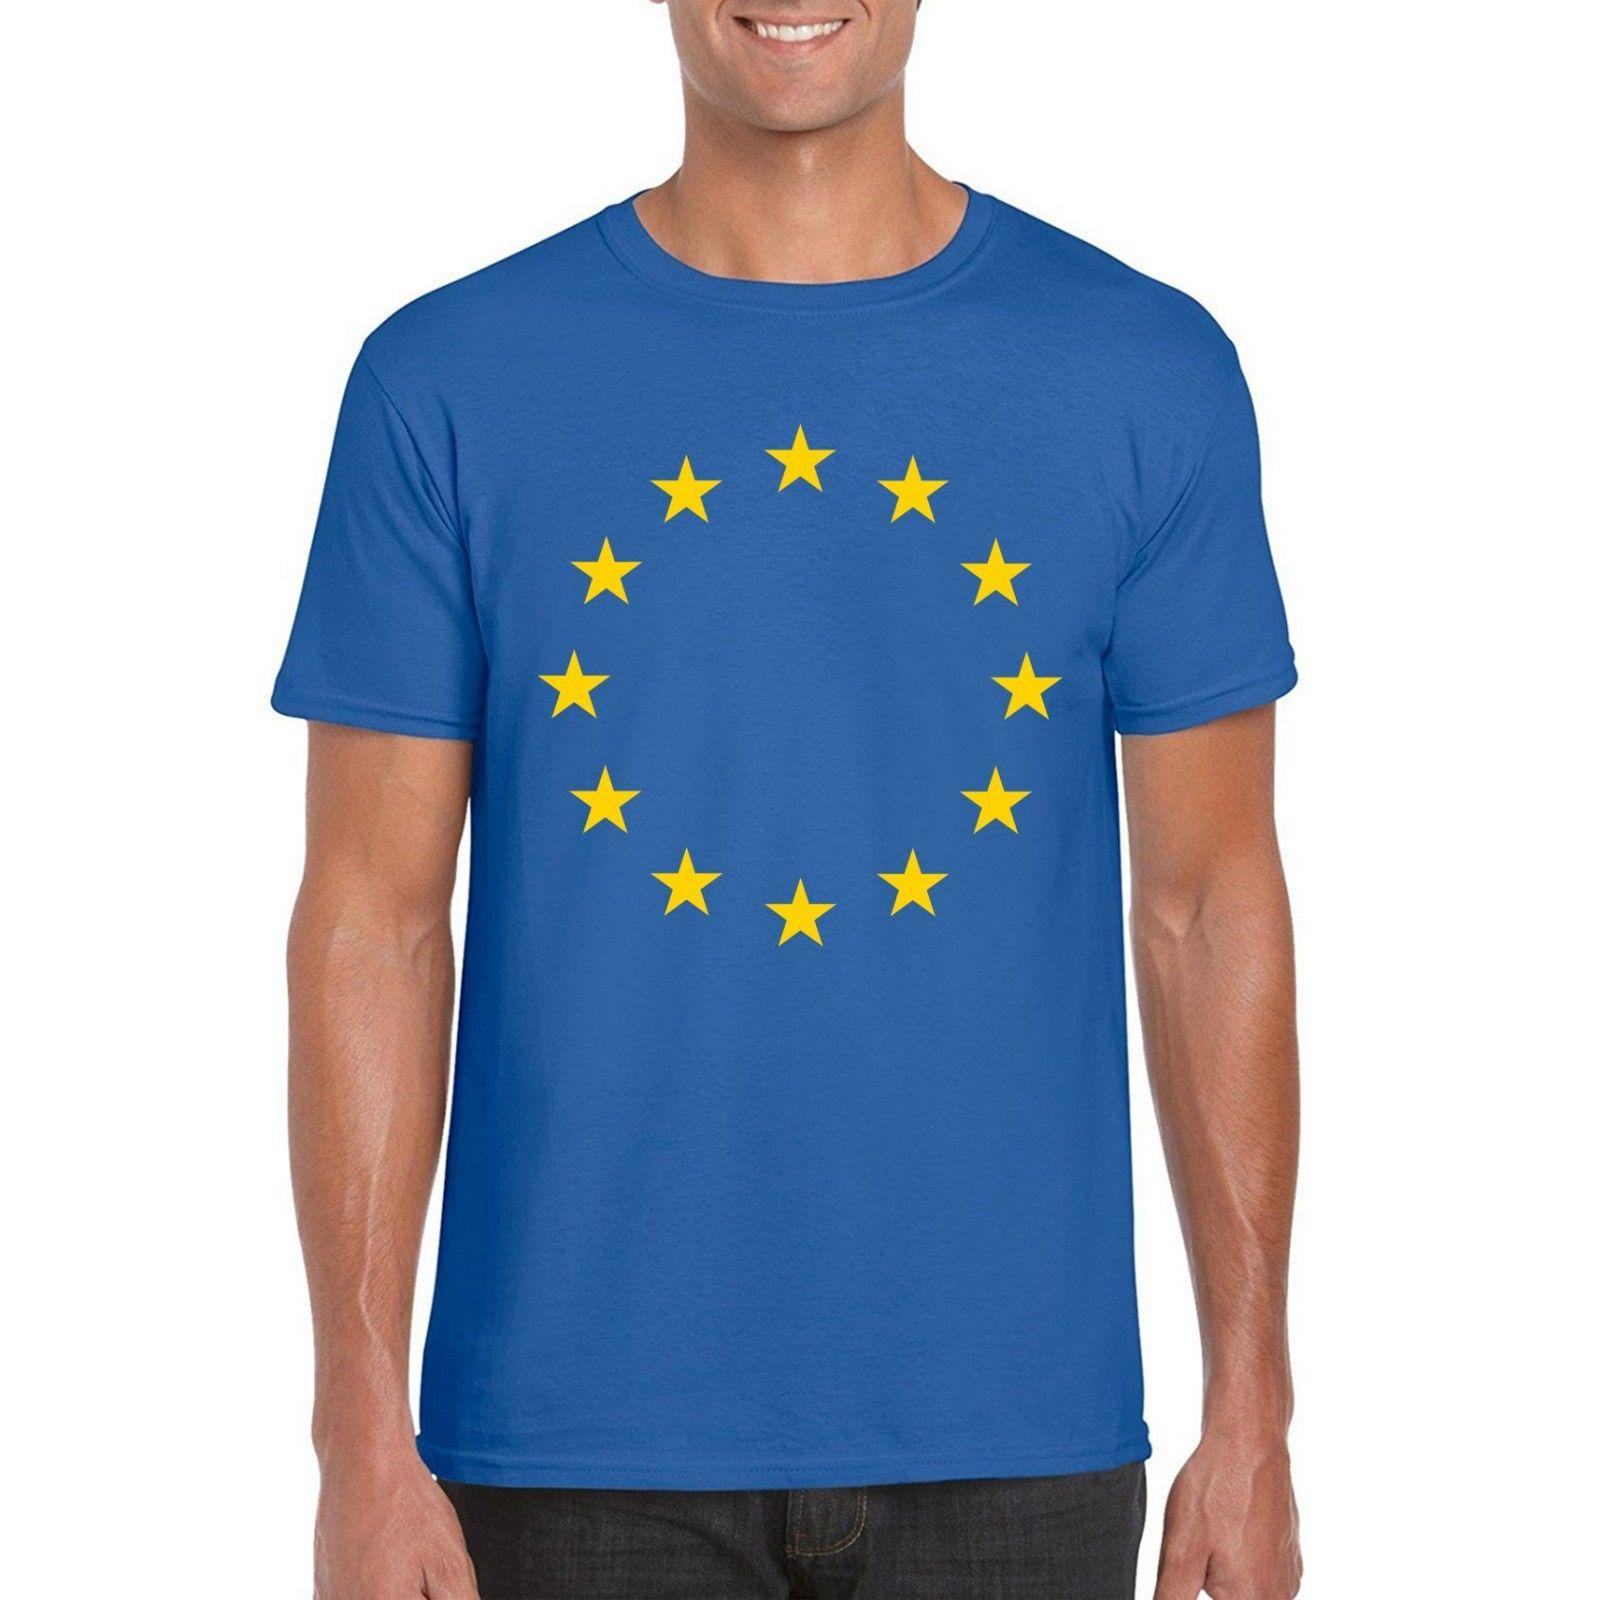 17215481 European Union EU Stars Flag T Shirt, Brexit Vote Remain Tee Adult & Kid  Sizes Funny Unisex Gift Top T Shirt Sites Cool T Shirts For Boys Online  From ...